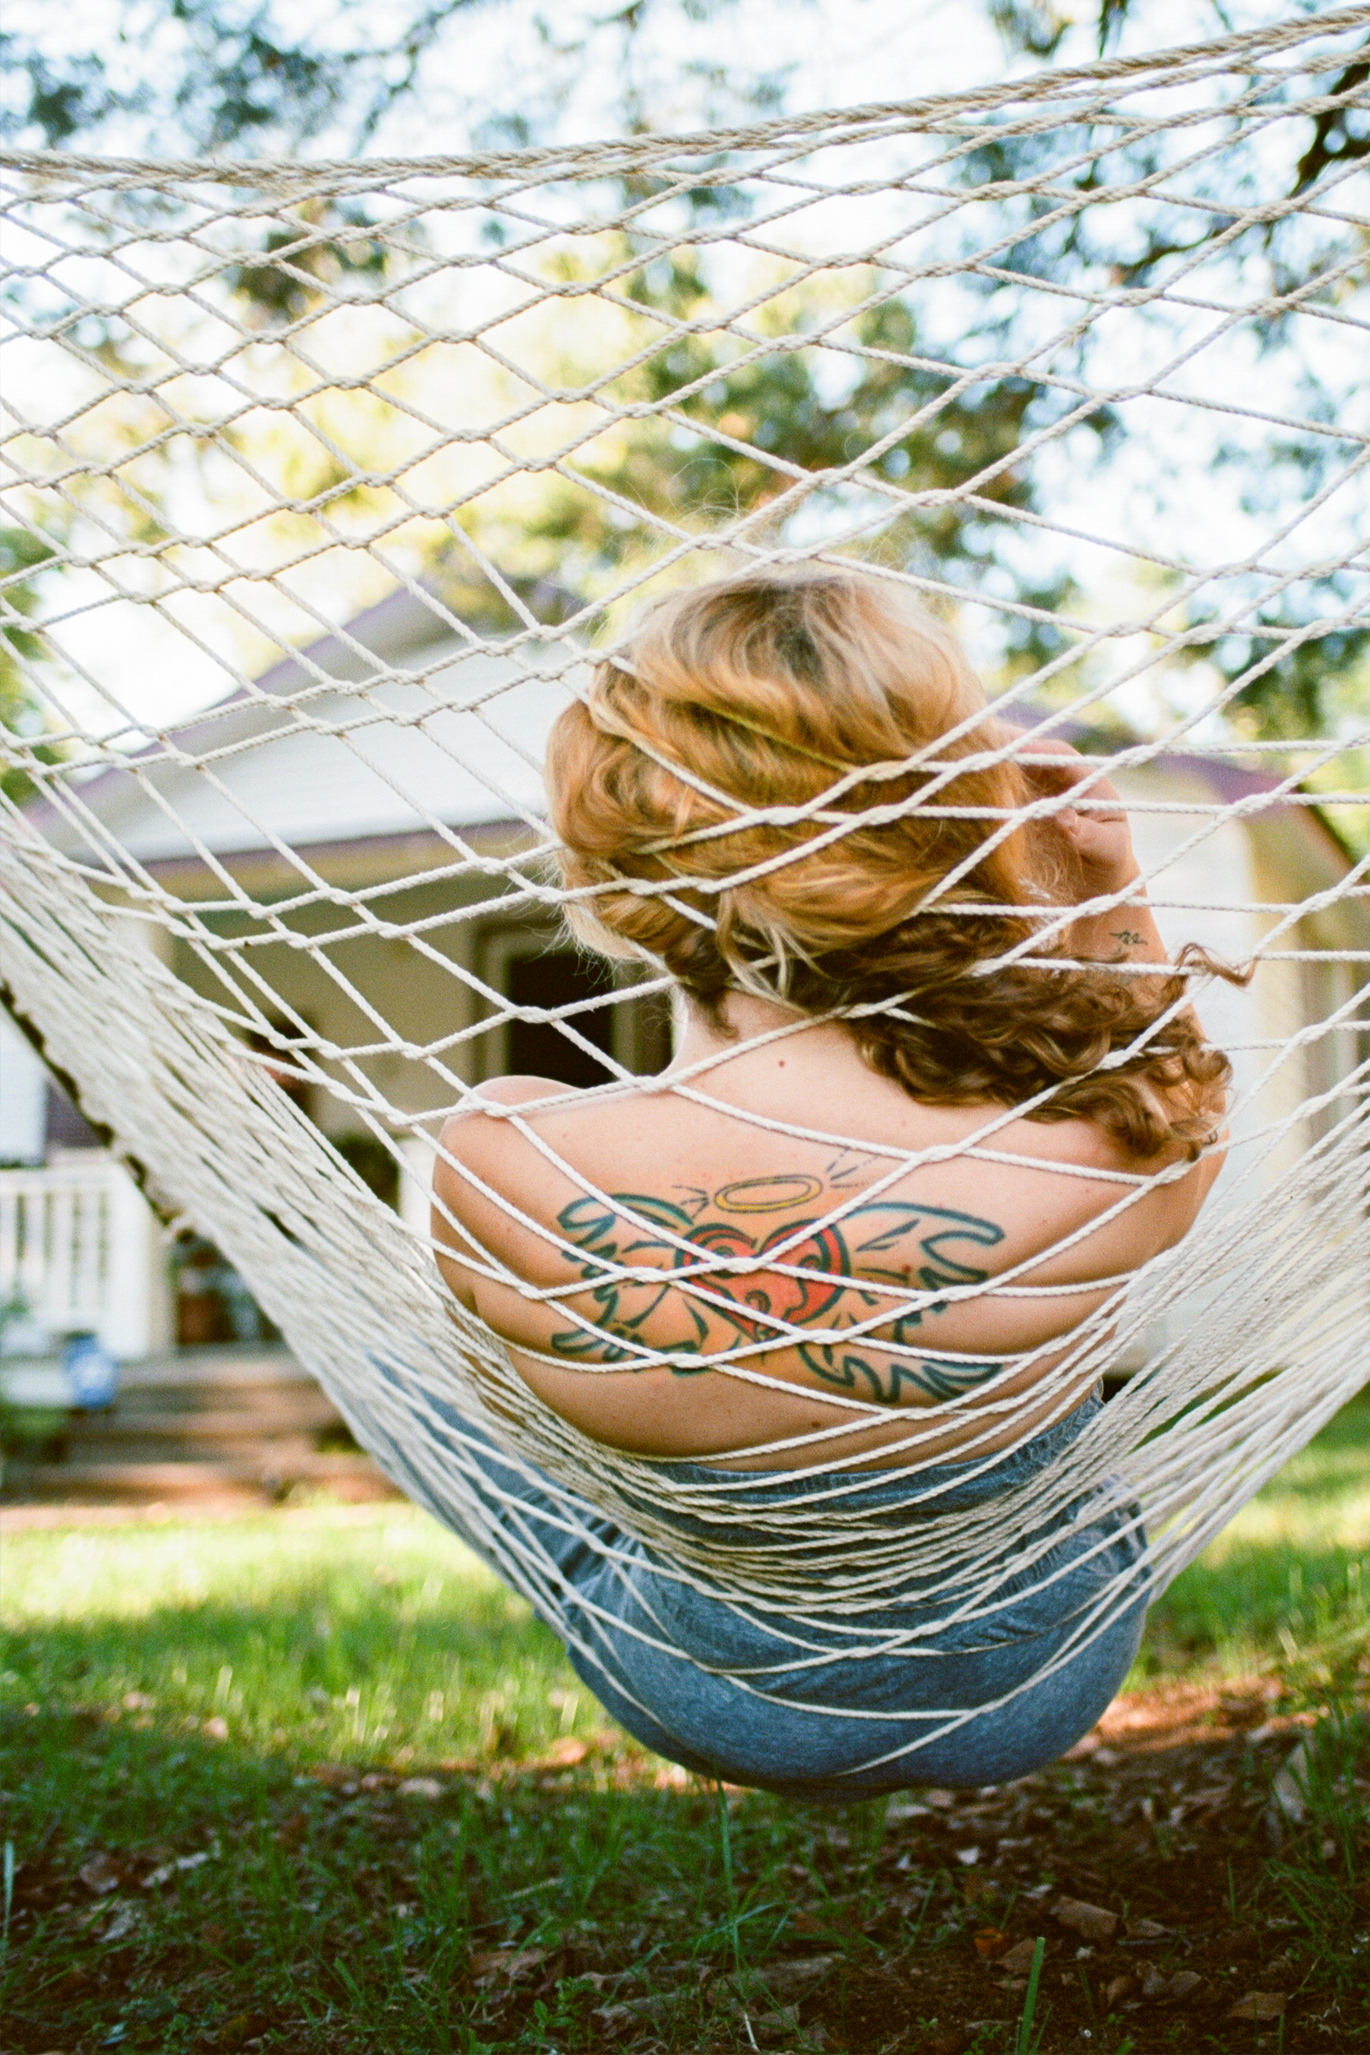 Woman with tattoo relaxing in hammock